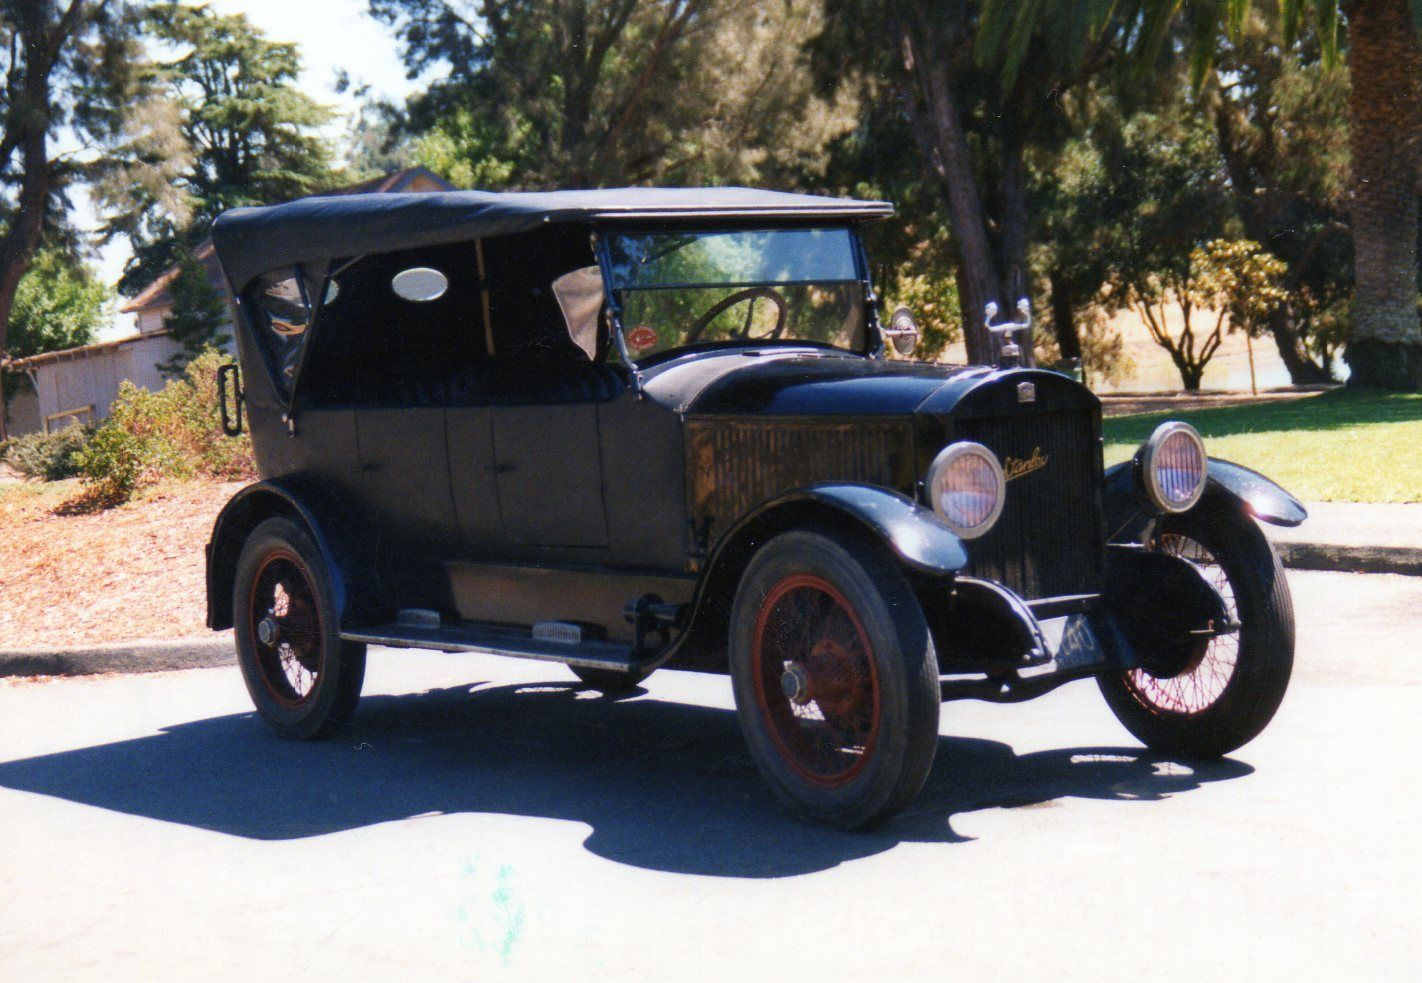 This 1920 Stanley Steamer Is Proof That The Steam Car Had A Pretty Amazing Lifespan – You Could Have Bought This One!